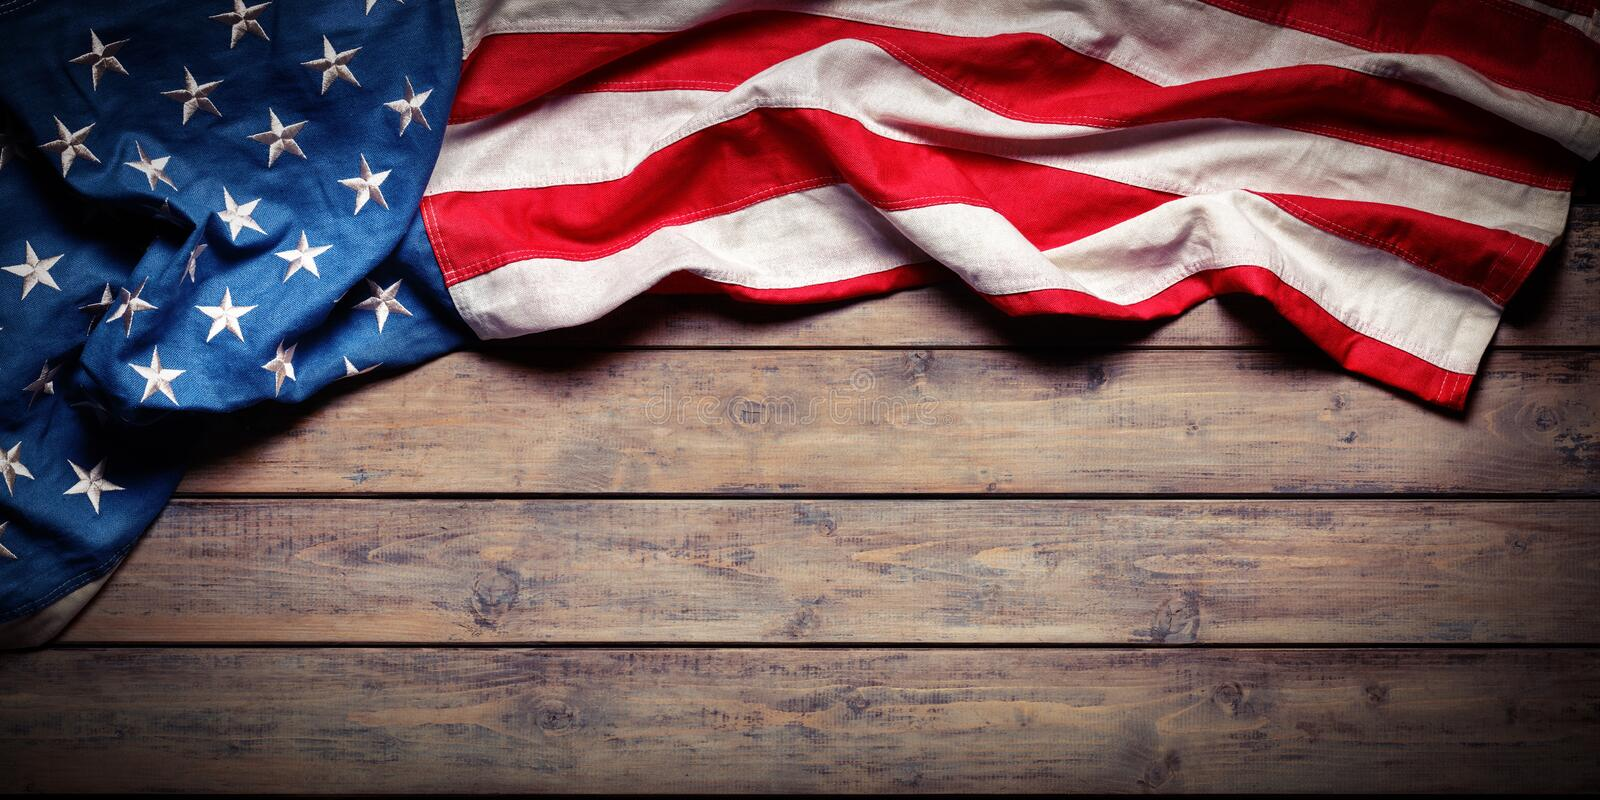 American Flag On Wooden Table. Grunge Textures